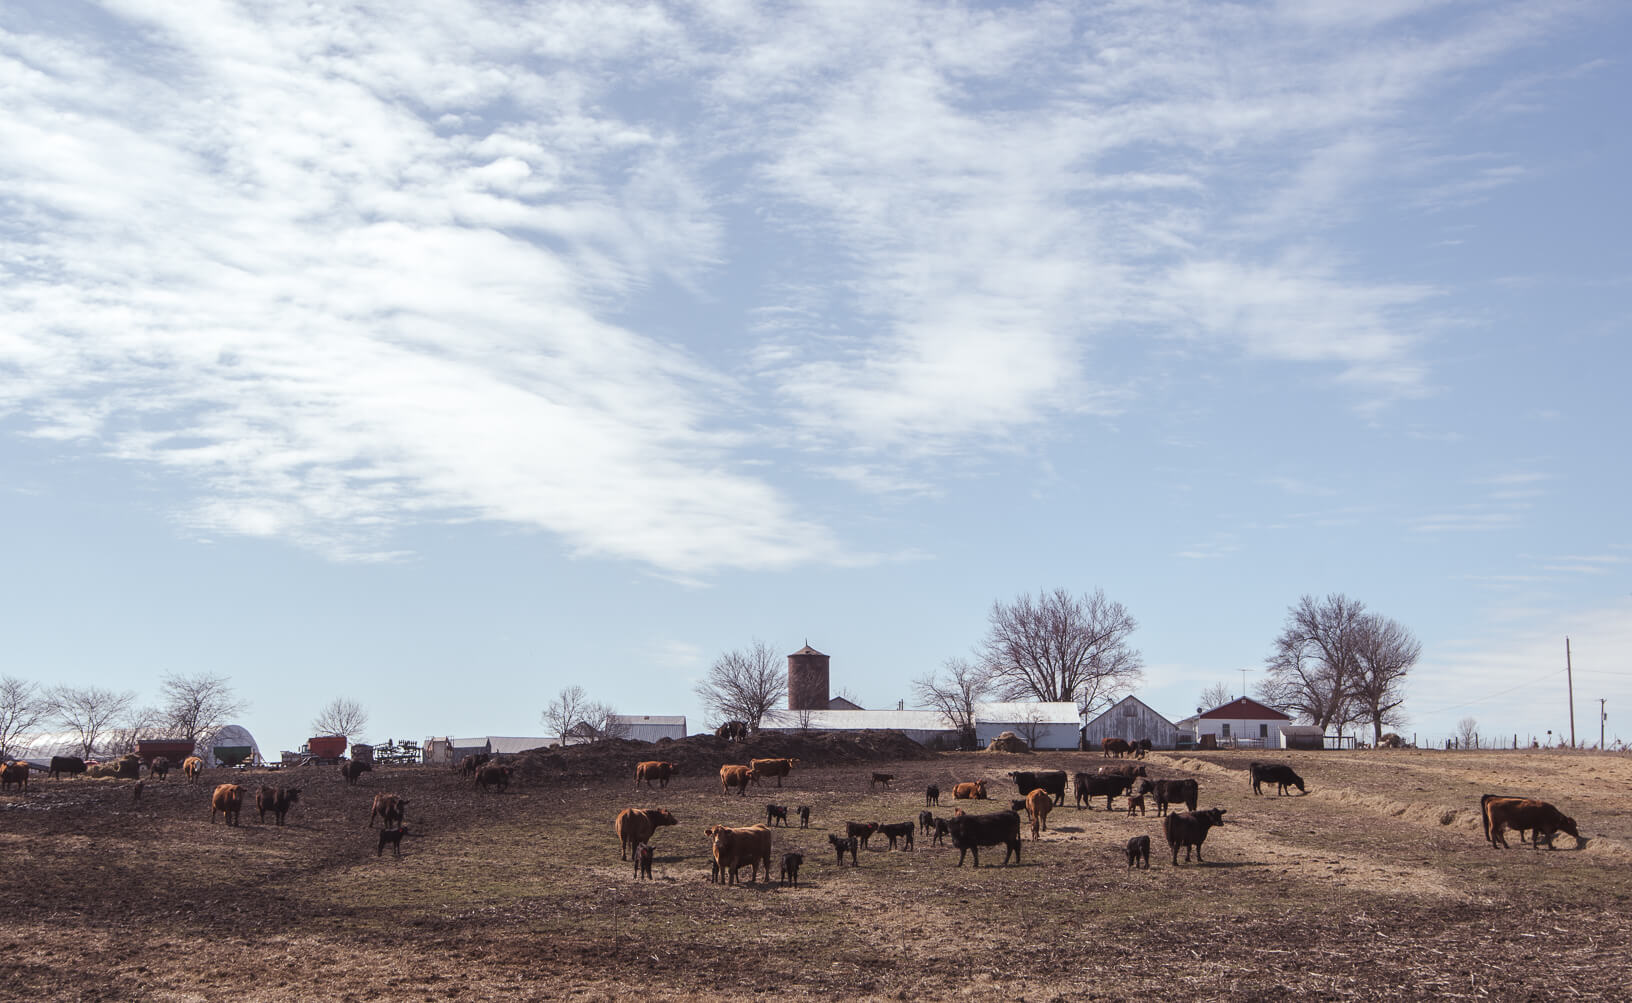 Photo credit Joseph L. Murphy. The rolling hills of Bryan Reed's farm near Albia provided a serene backdrop as cows and calves bask in the spring sun.